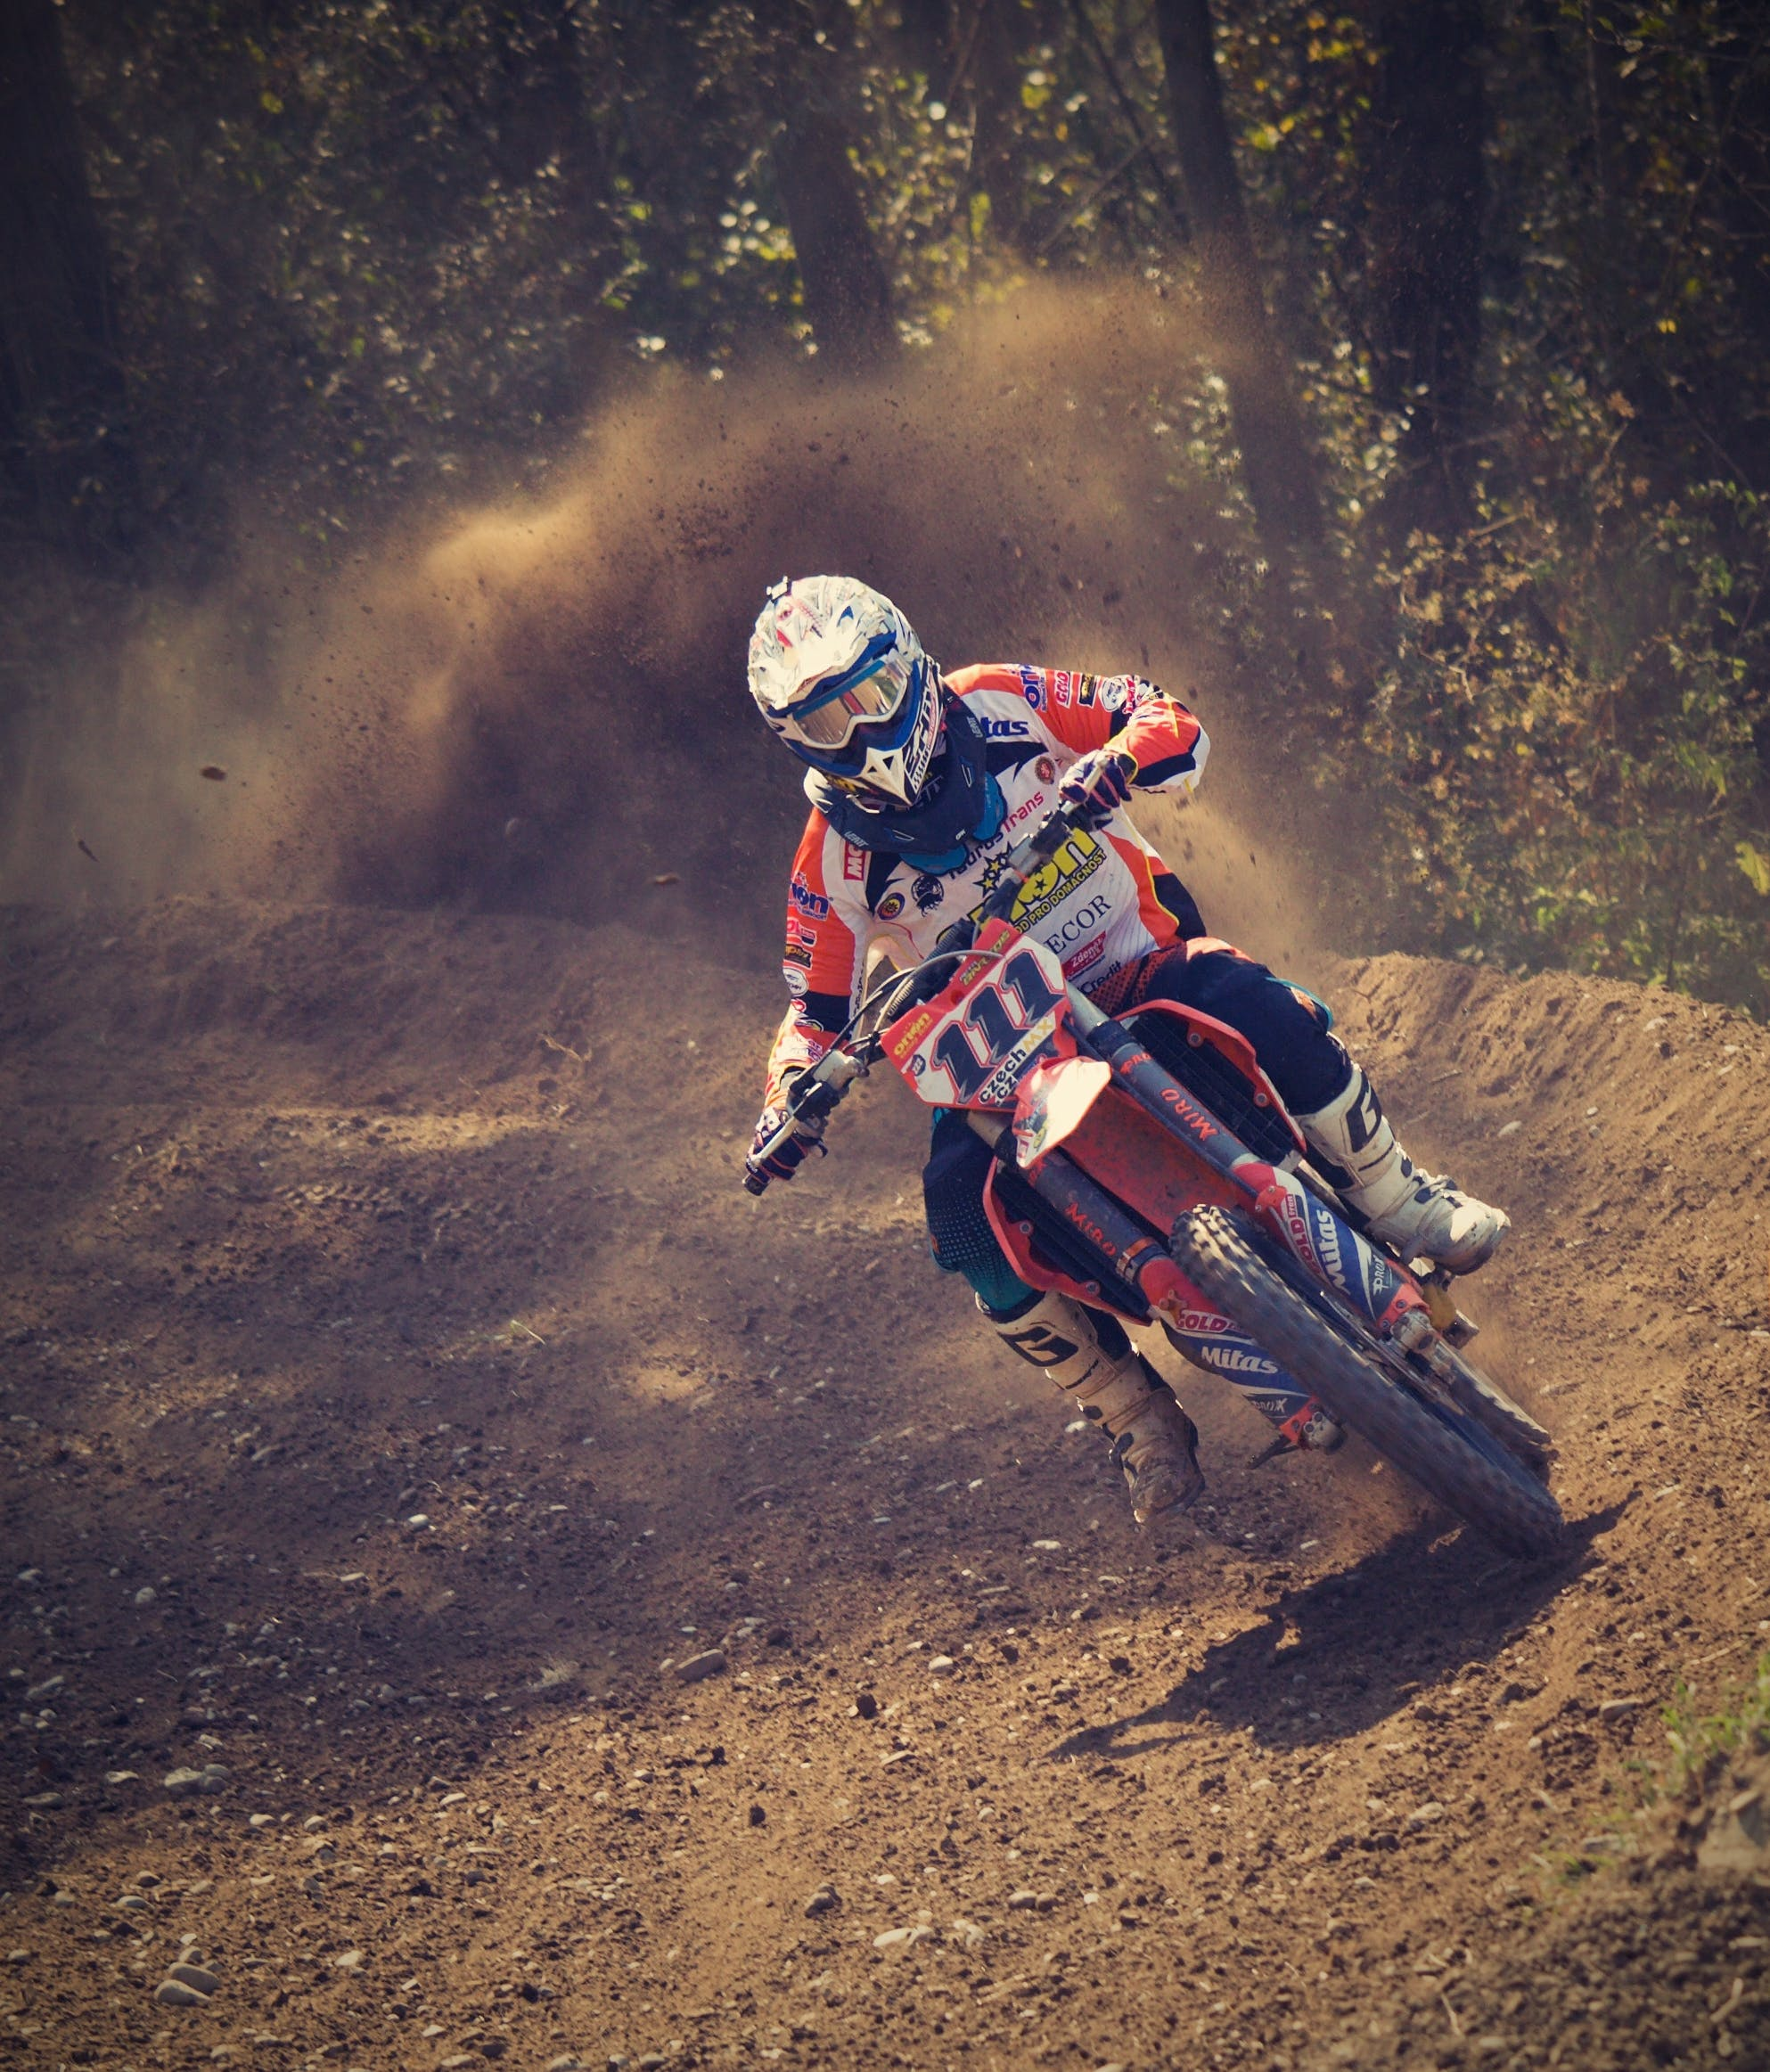 Man in White and Orange Motocross Overall Riding His Motocross Dirt Bike during Daytime